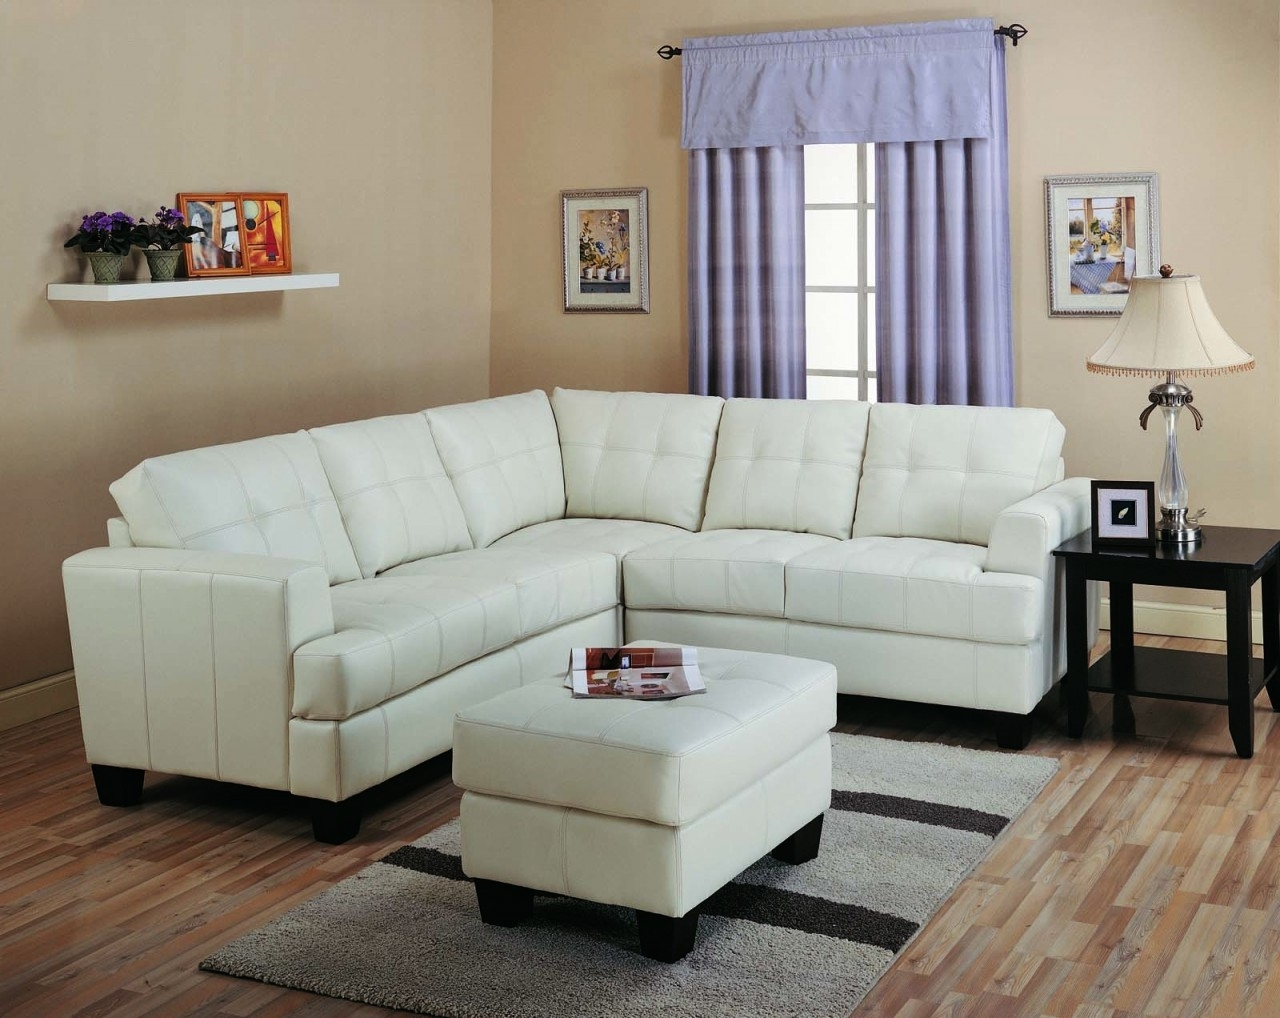 View Gallery Of Canada Sectional Sofas For Small Spaces Showing 8 Of 20 Photos